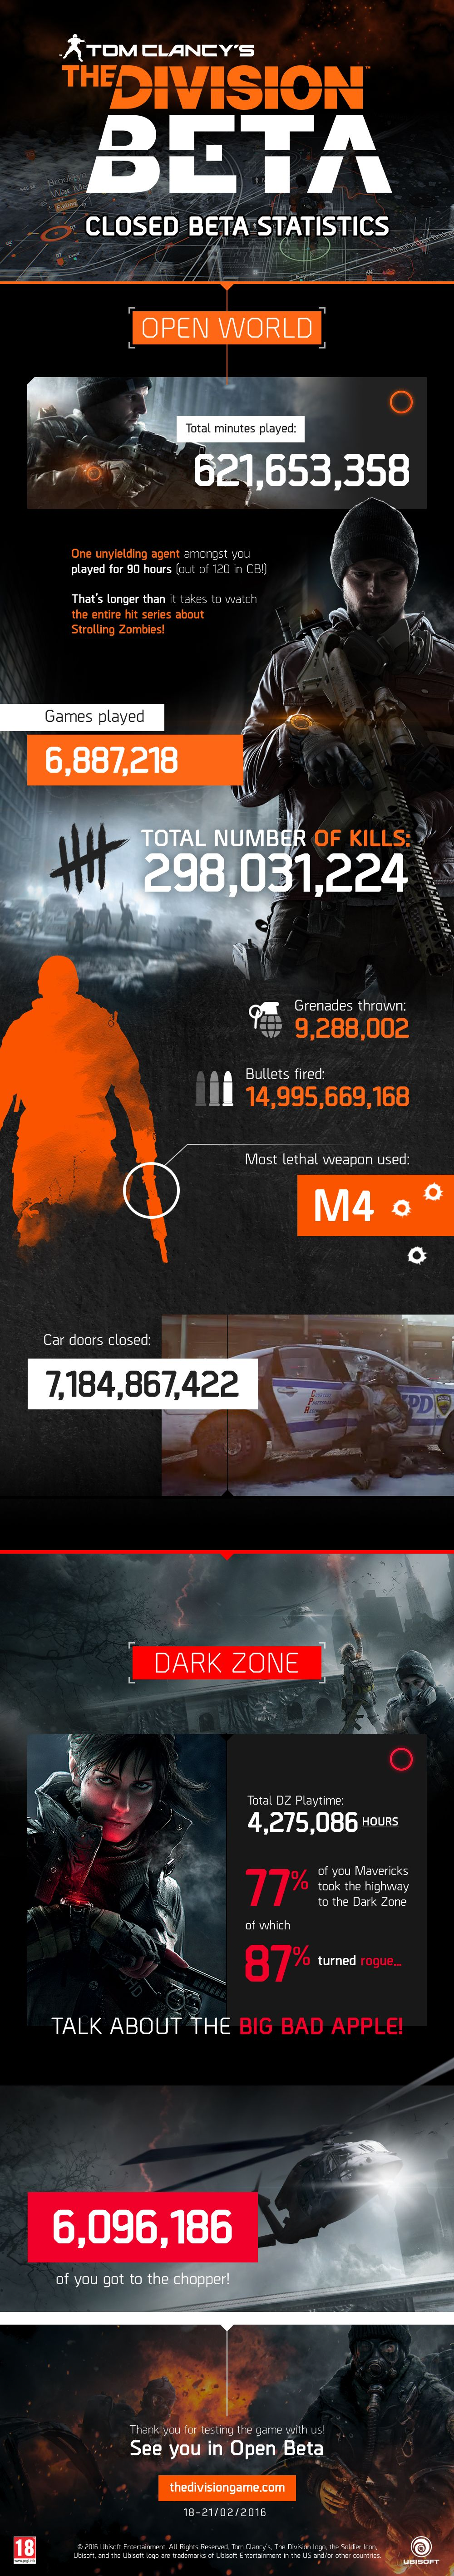 the_division_closed_beta_infographic